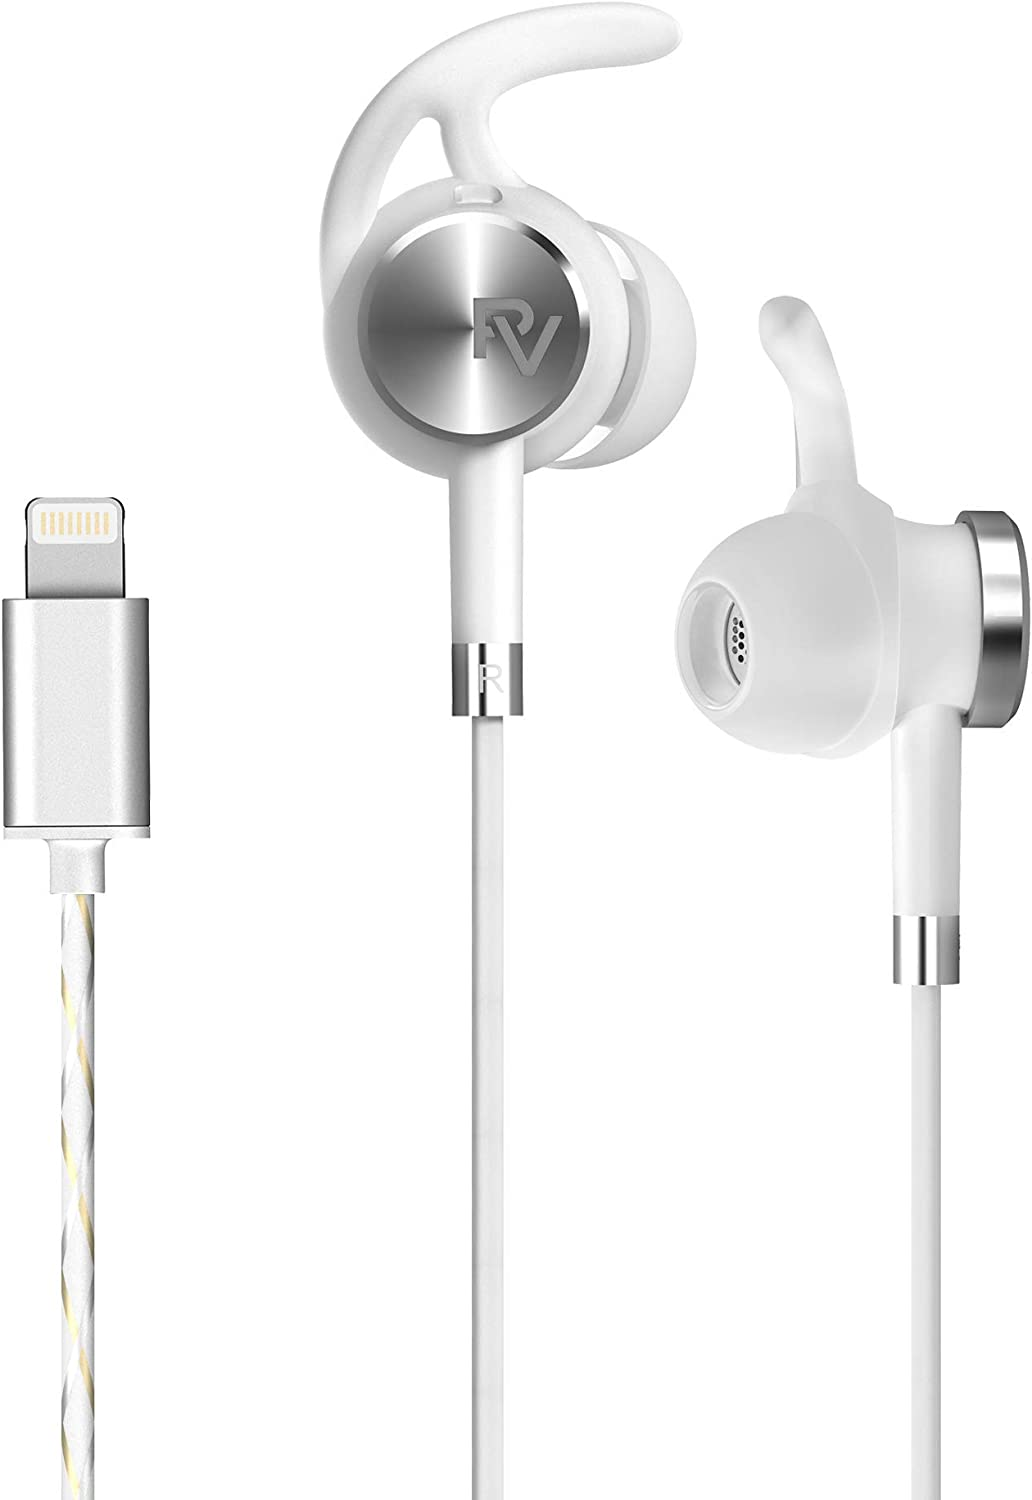 PALOVUE Lightning Earphones with Mircrophone Headphones Earbuds for Sports Workout MFi Certified Noise Isolation Compatible iPhone 12 11 Pro Max iPhone X/XS Max/XR iPhone 8/P 7/P NeoFlow (Silver)